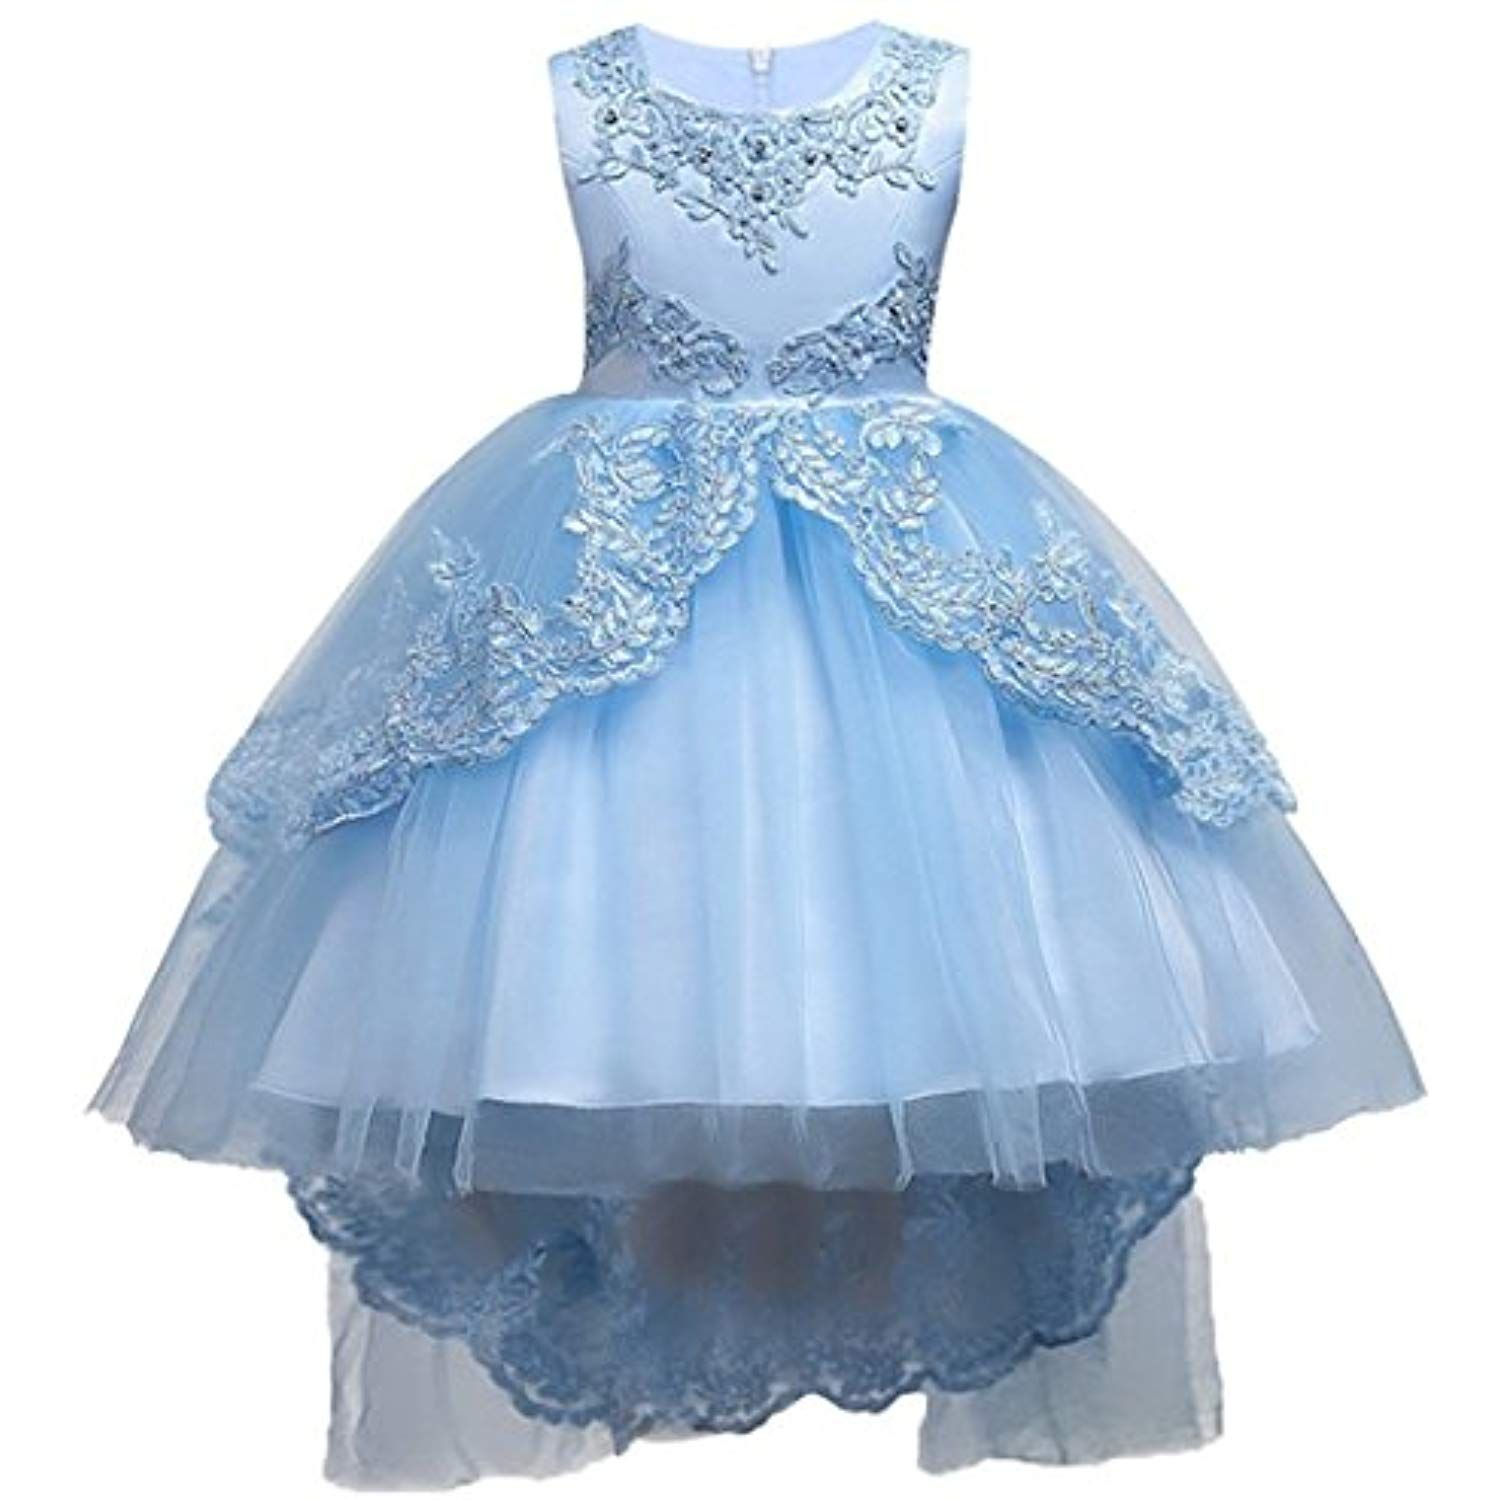 71d178e9ee Fancy Lace Flower Girl Dress 1-12 Years Old Princess Dress Ball Gown     Check out this great product. (This is an affiliate link)